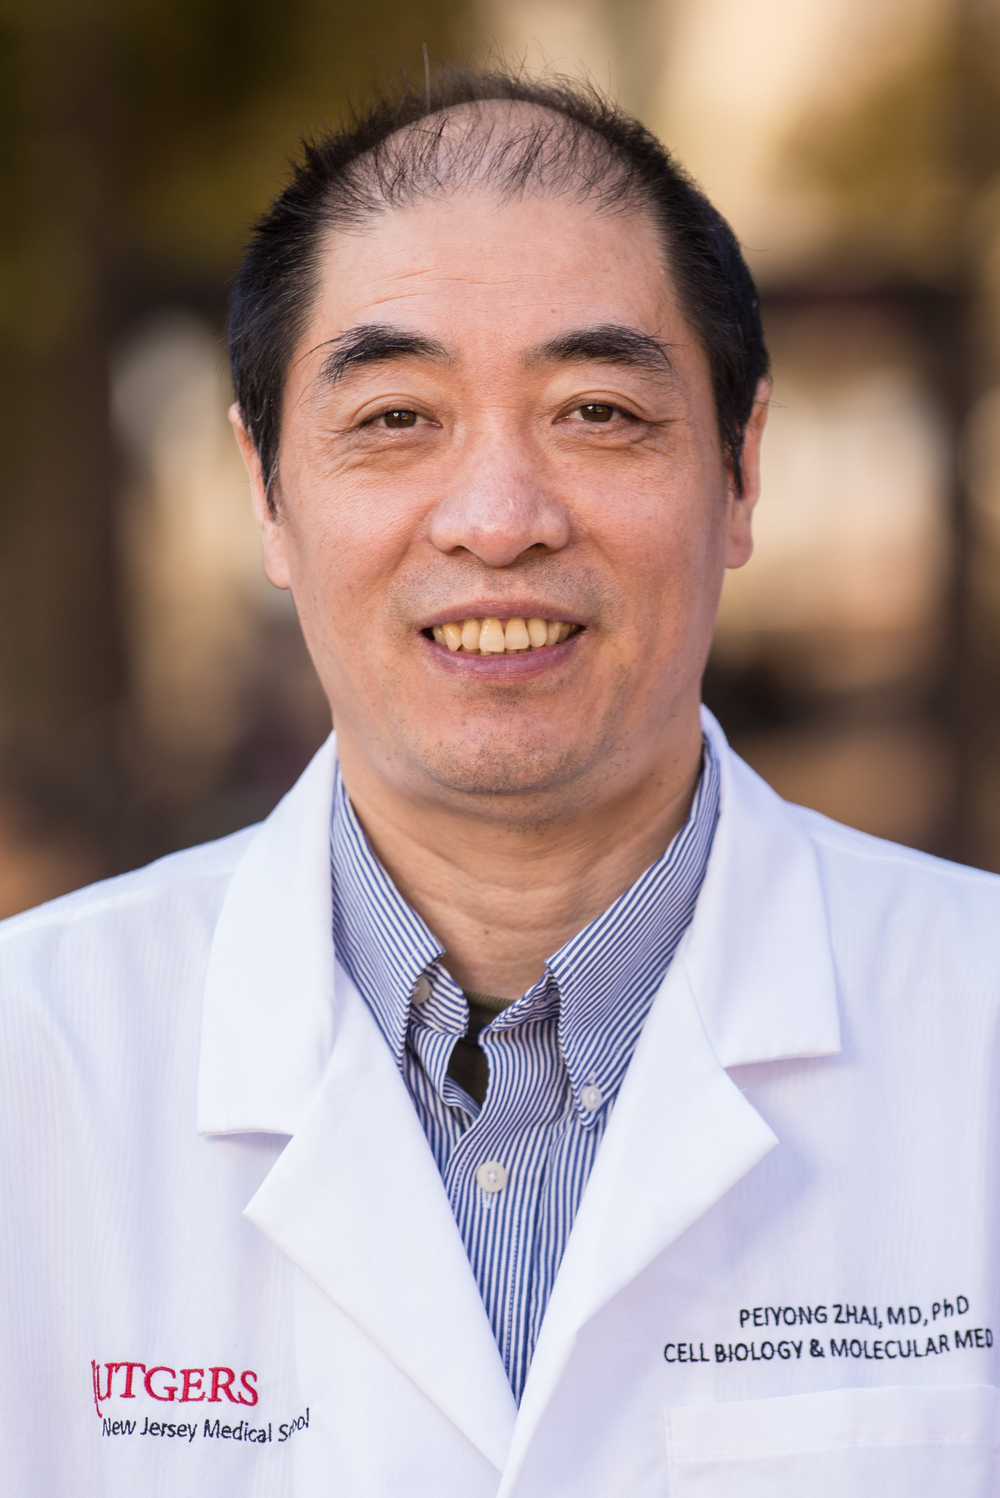 Peiyong Zhai, MD, PhD Email Peiyong 2013-present     Associate Professor, Rutgers NJMS   2007-2013         Assistant Professor, UMDNJ 2006-2007          Instructor,  UMDNJ 2003-2006          Research Associate, UMDN Research interests:  Angiotensin II signaling in cardiac hypertrophy